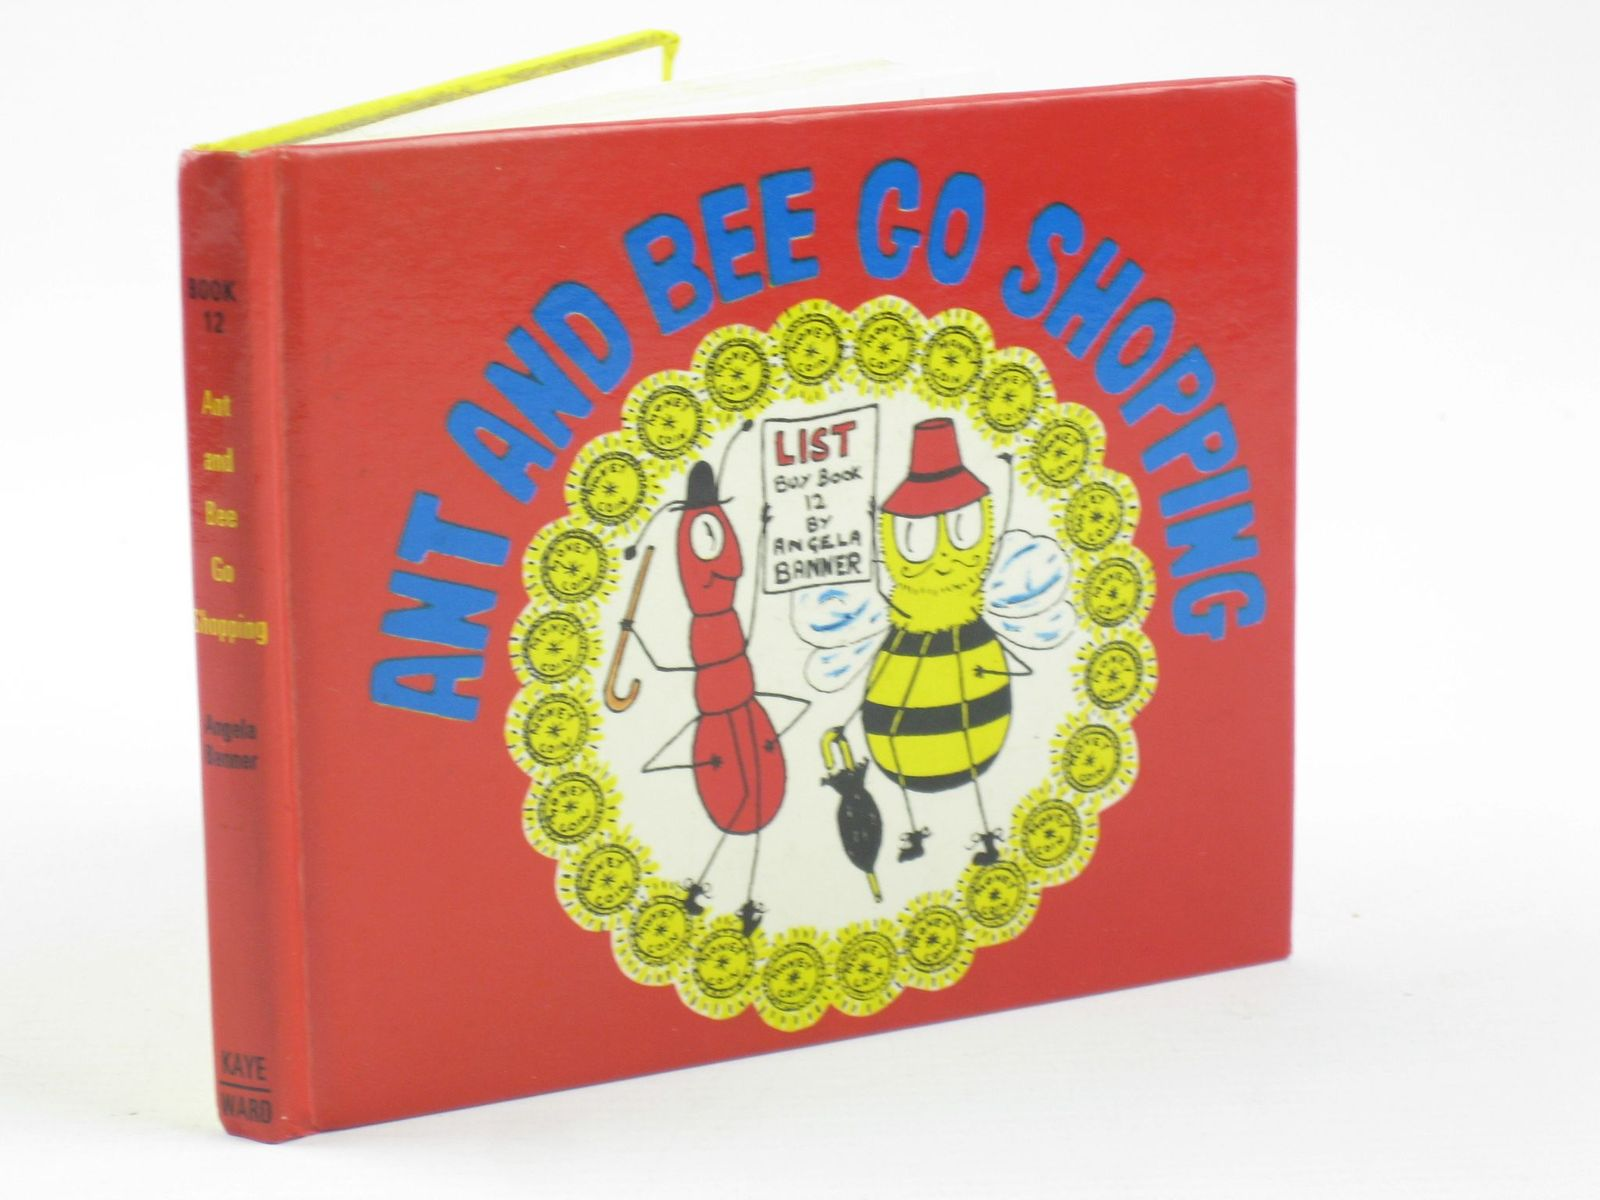 Photo of ANT AND BEE GO SHOPPING written by Banner, Angela illustrated by Banner, Angela published by Kaye & Ward Ltd. (STOCK CODE: 1310923)  for sale by Stella & Rose's Books